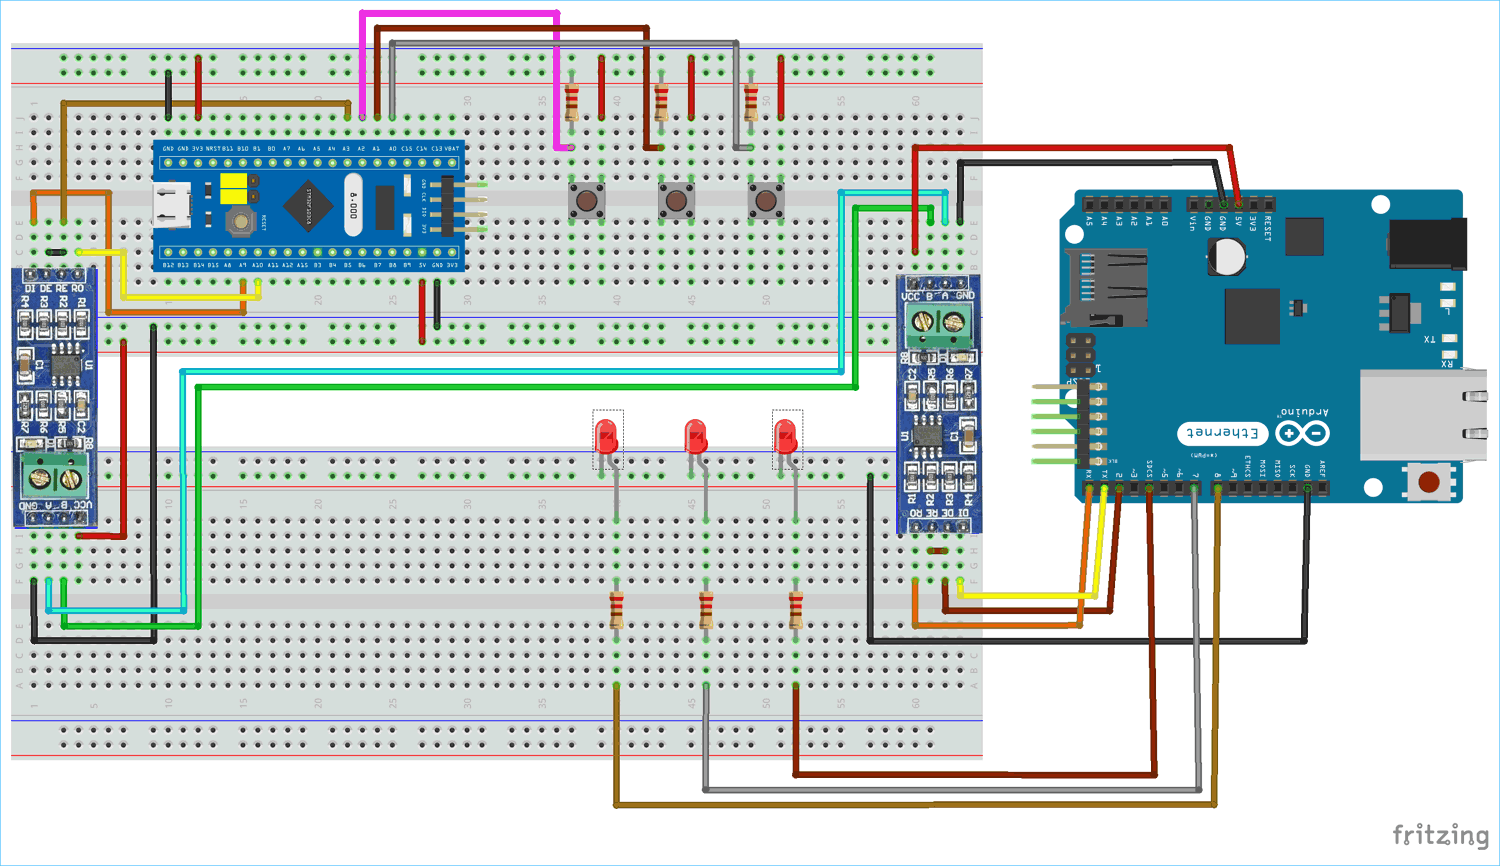 Serial Communication Between Stm32f103c8 And Arduino Uno